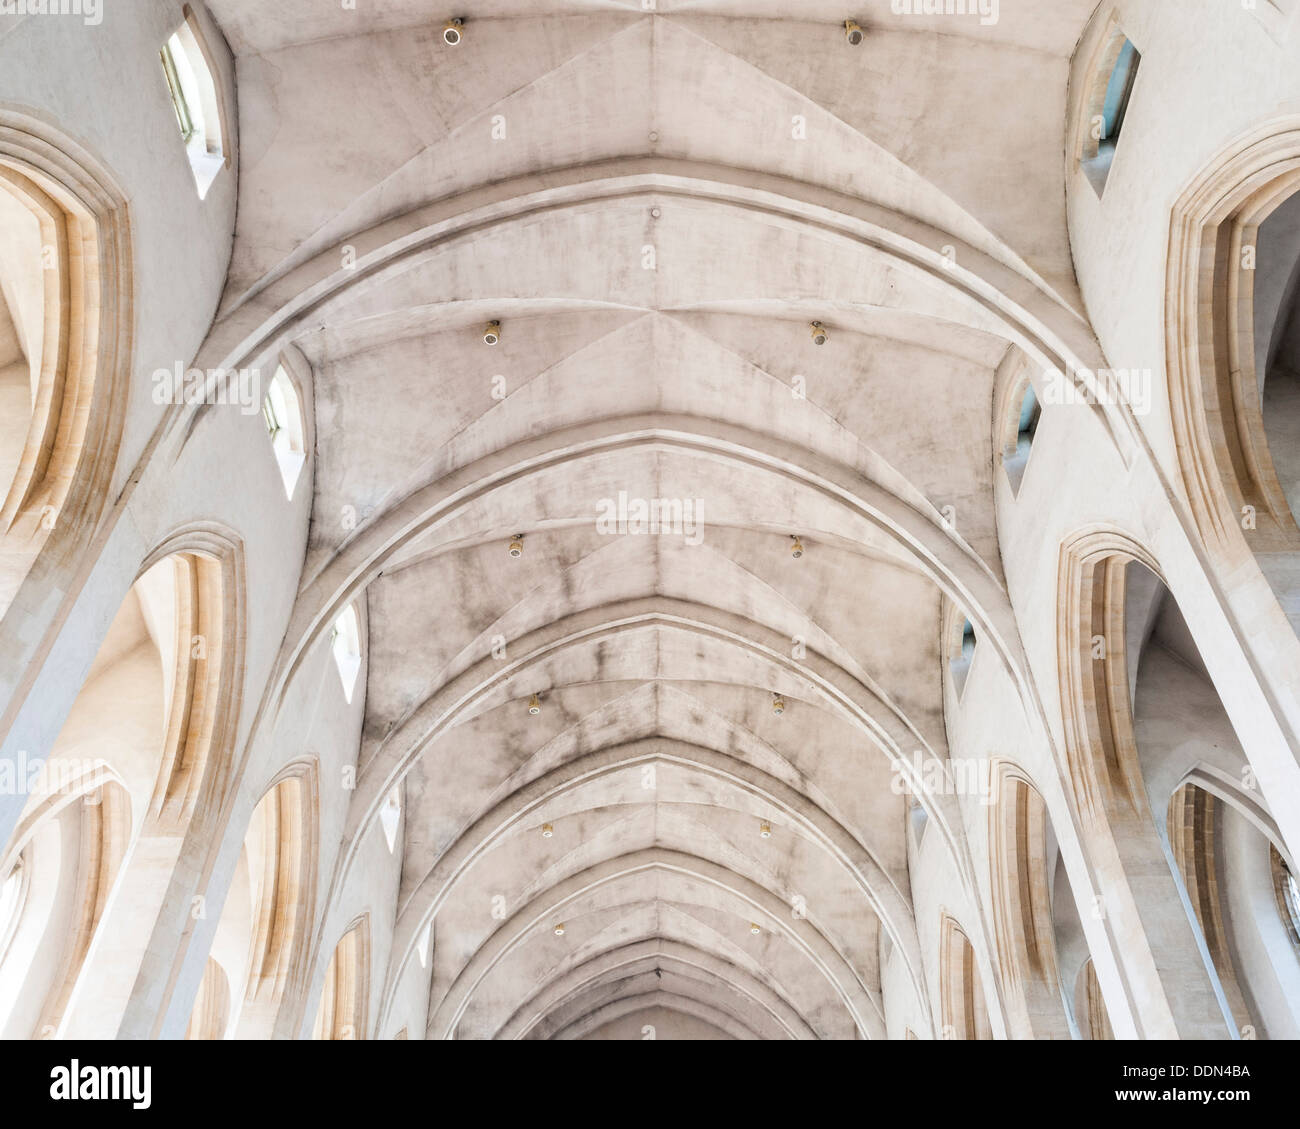 Guildford Cathedral, Guildford, United Kingdom. Architect: Sir Edward Maufe, 1961. Ceiling. Stock Photo